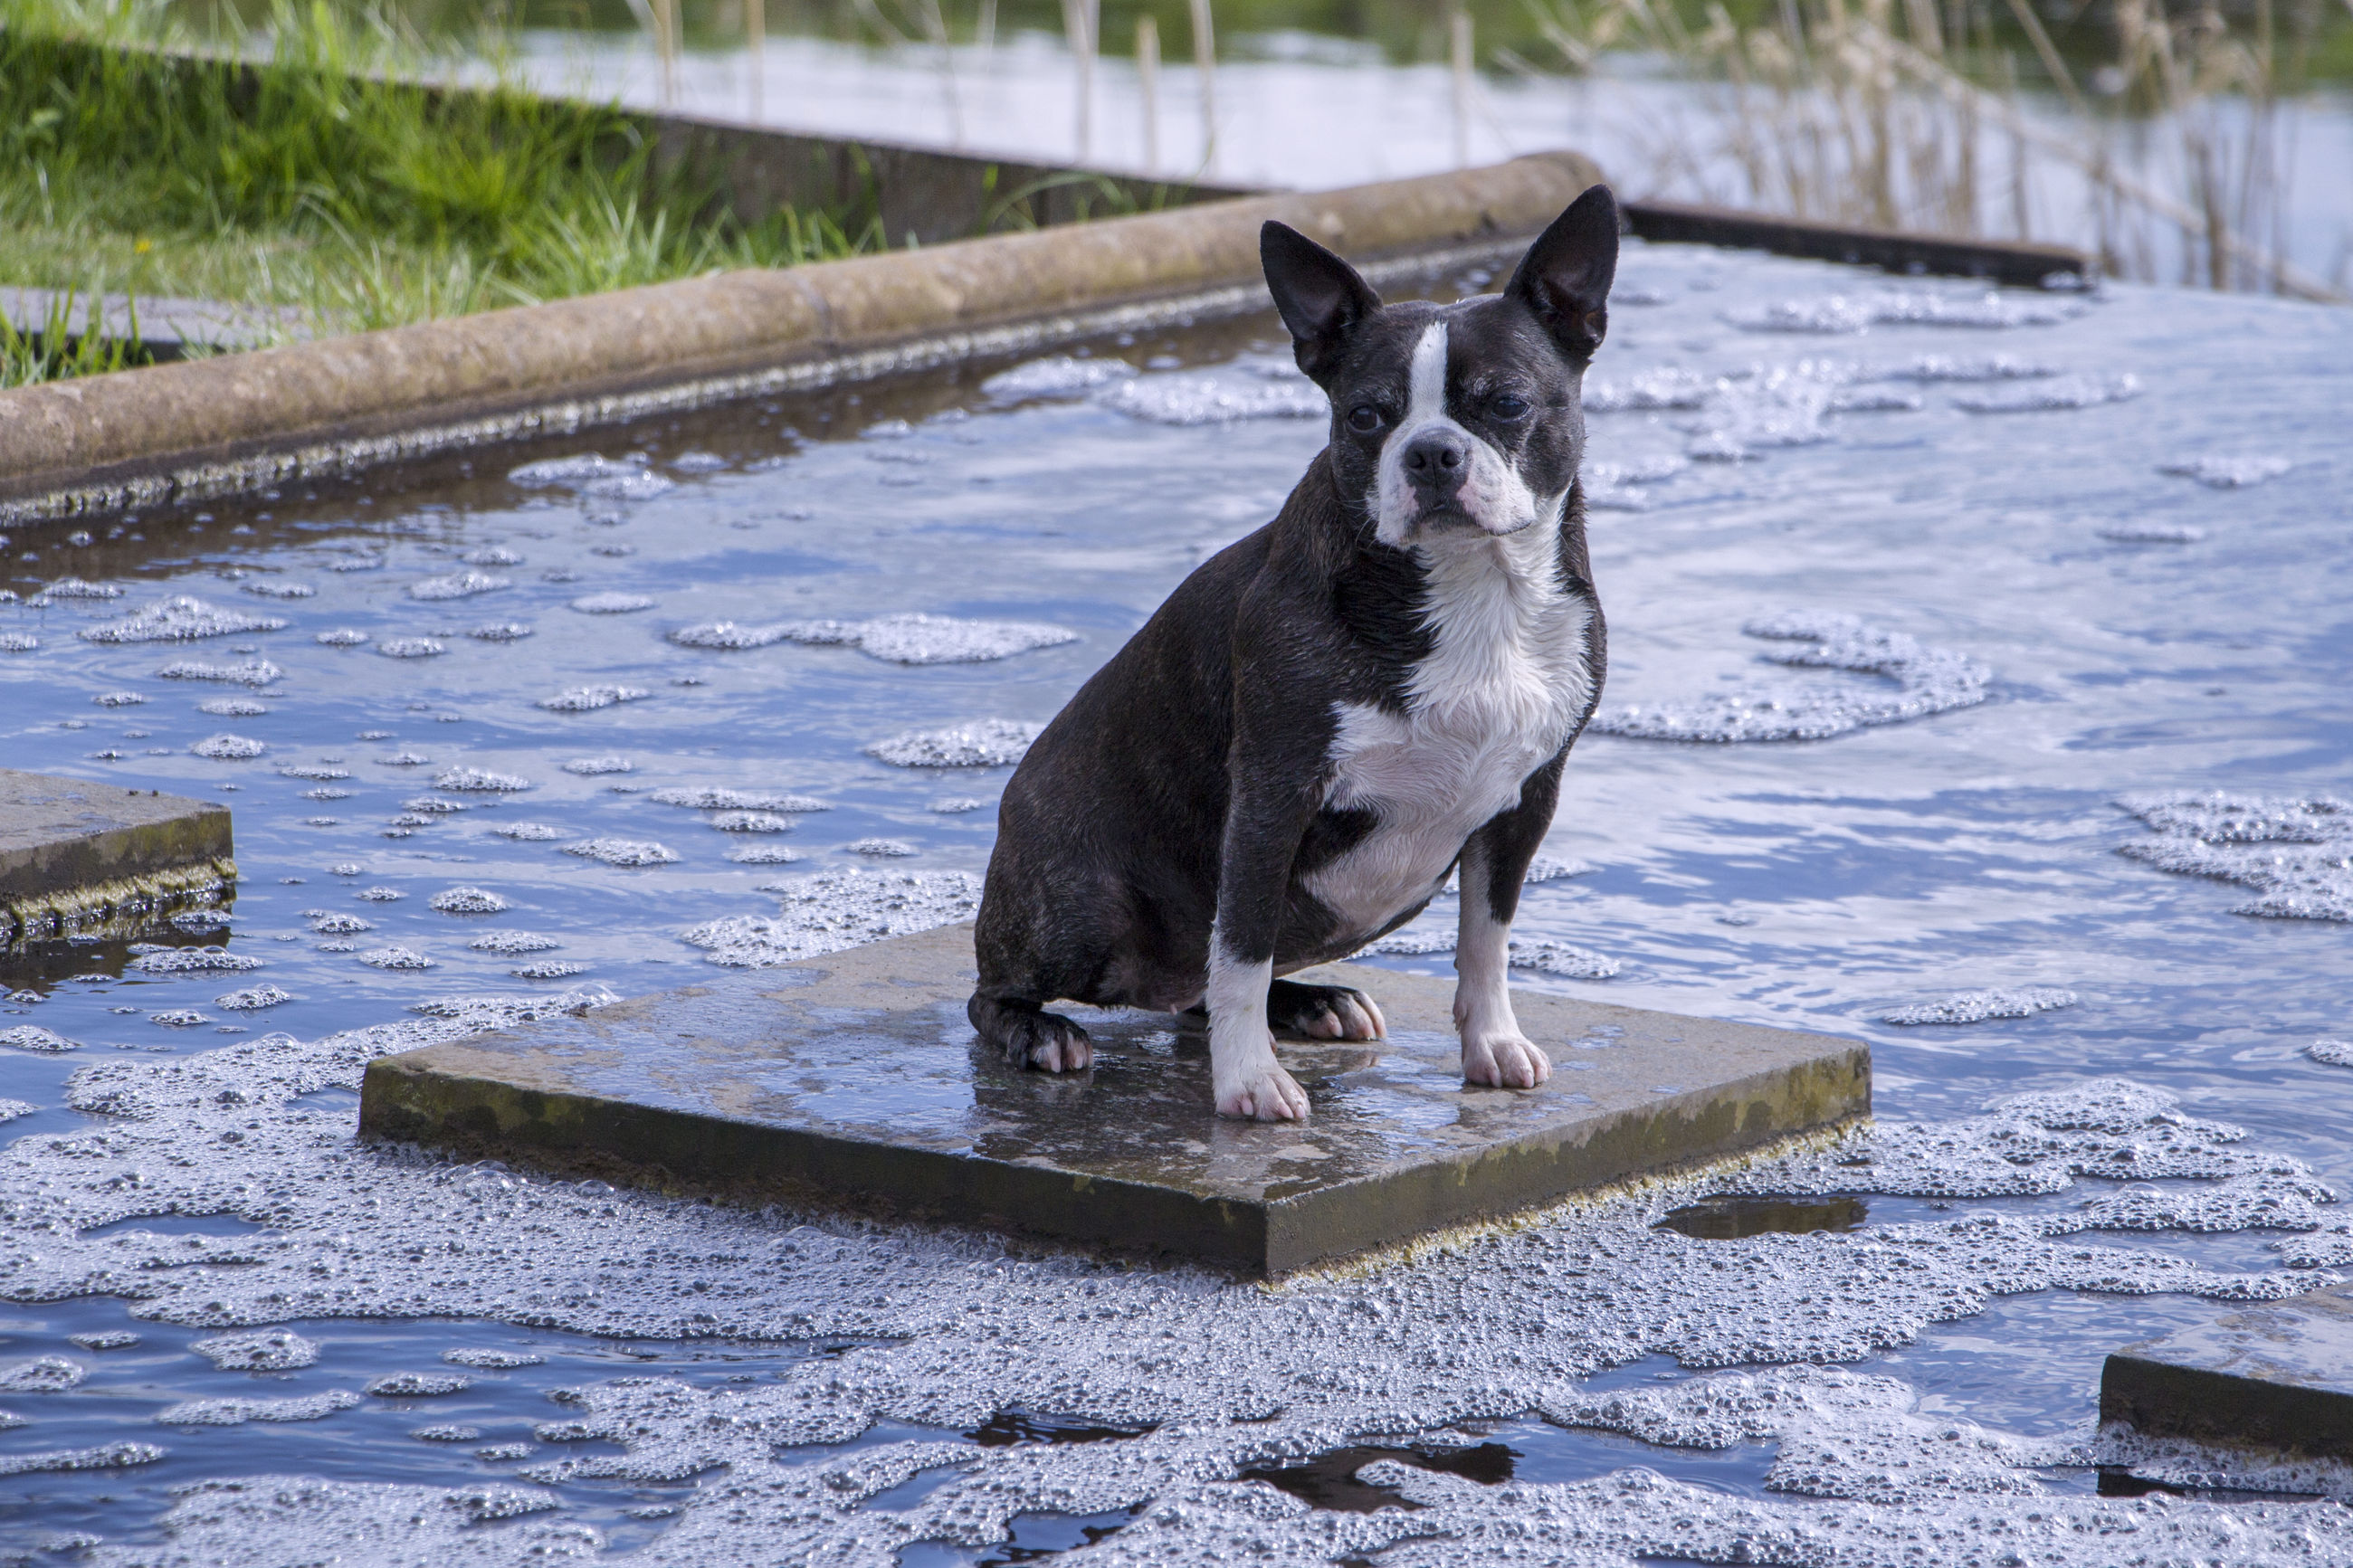 Dog on stepping stone amidst water